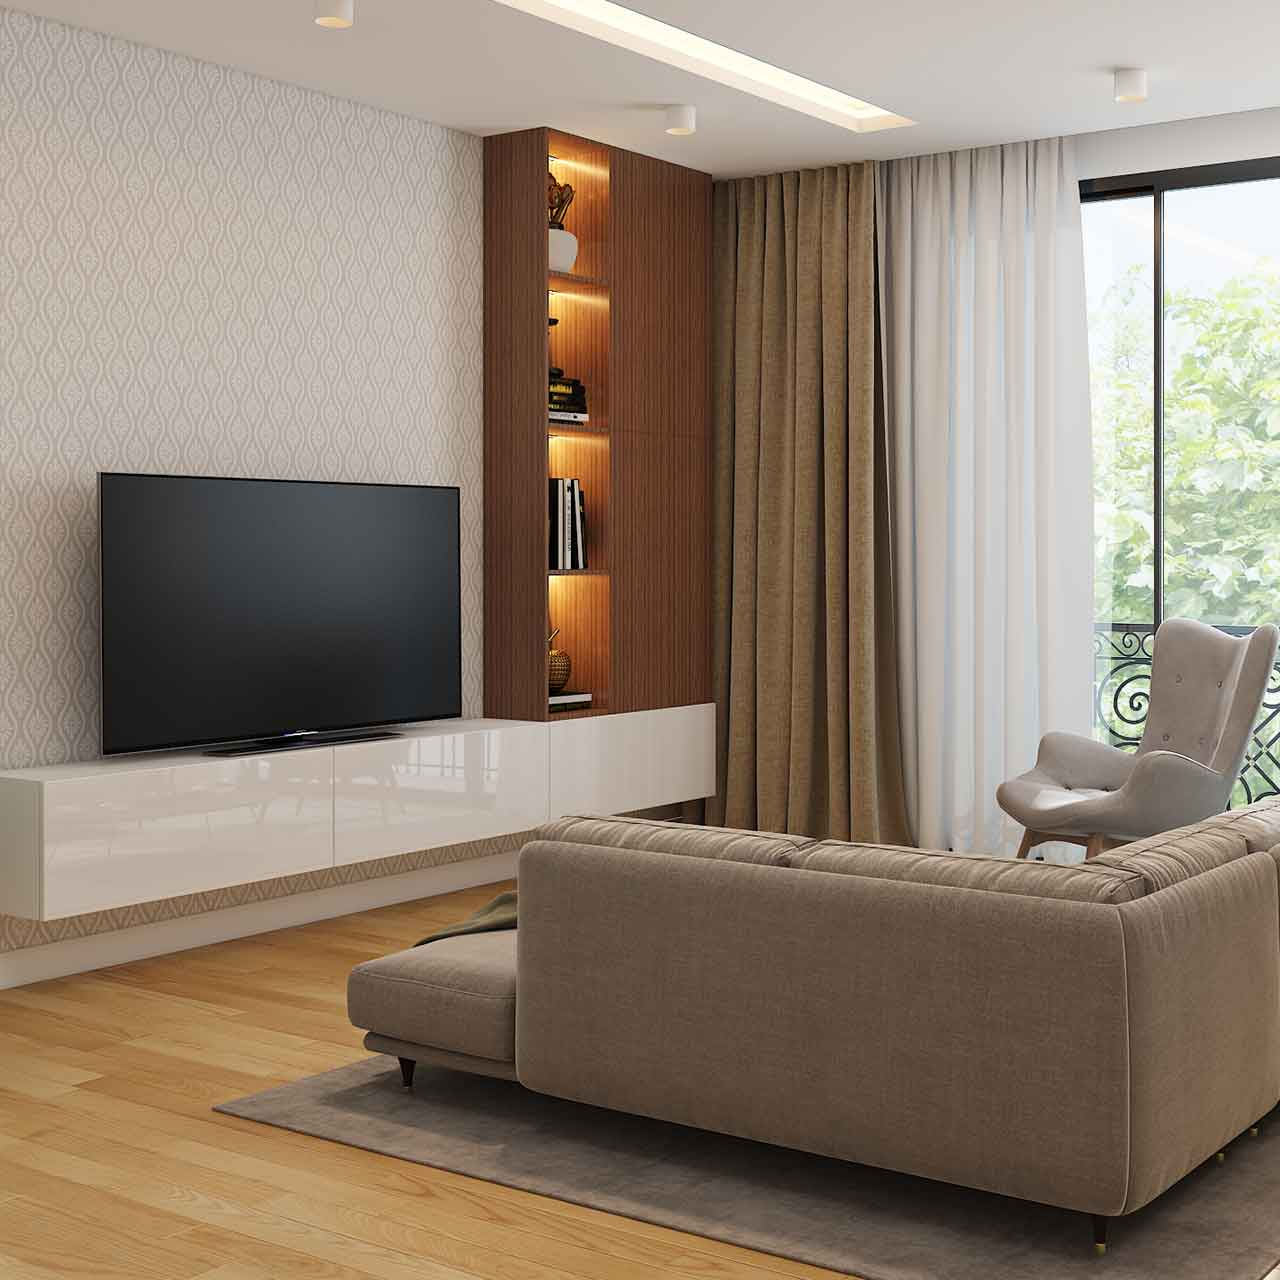 Mid century style living room interiors with wooden legged furniture, nested coffee tables and accent chairs